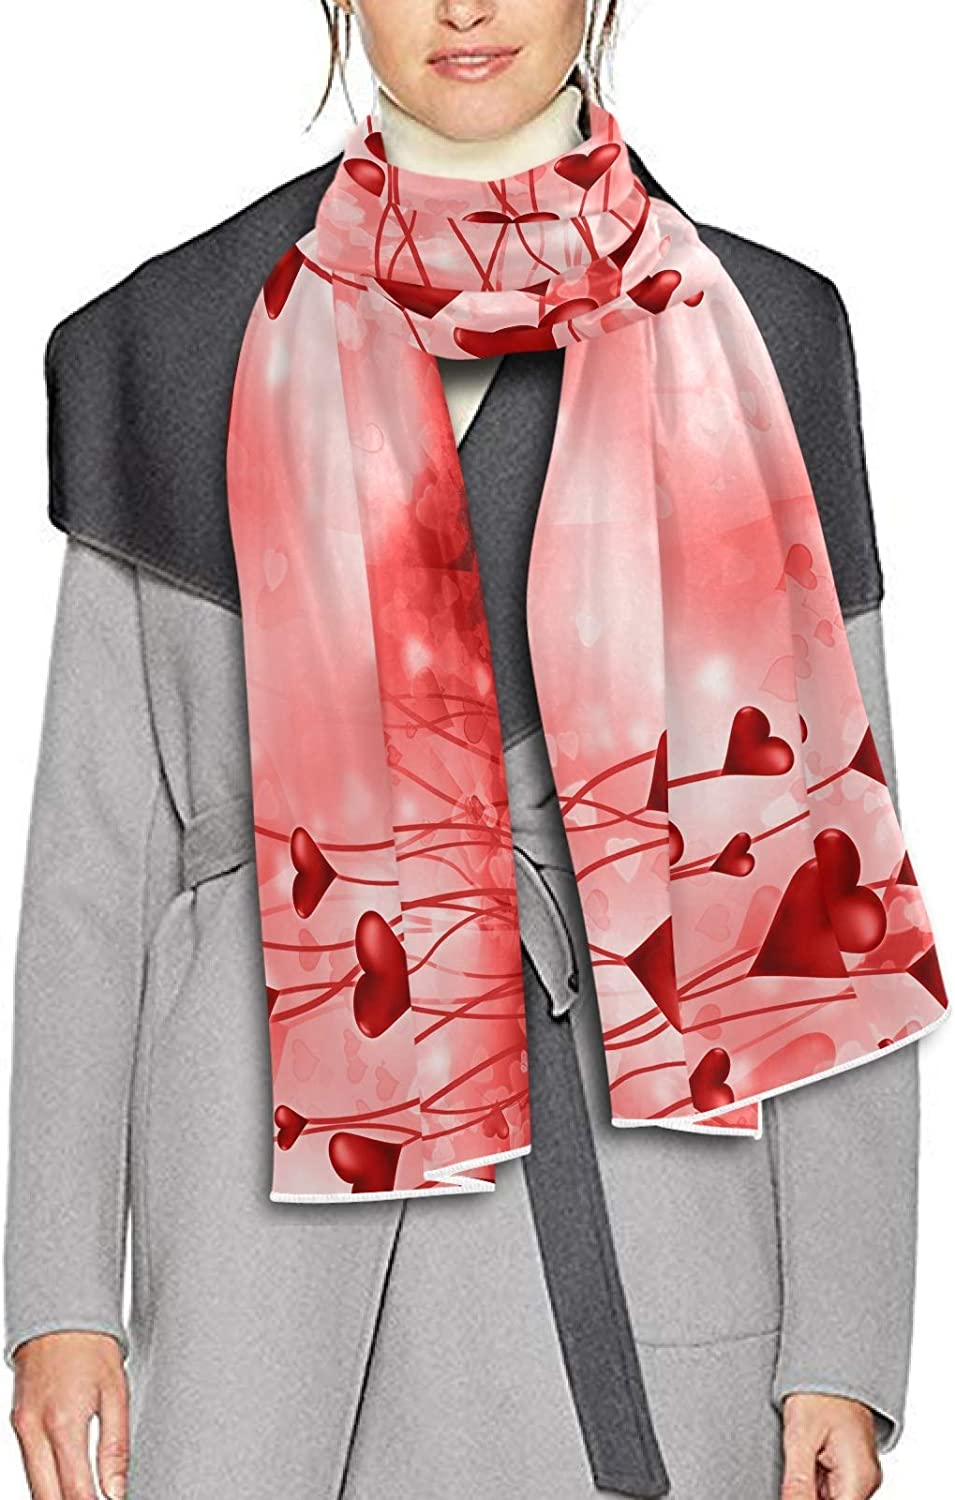 Scarf for Women and Men Valentine's Day With Hearts Blanket Shawl Scarves Wraps Thick Soft Winter Large Scarves Lightweight